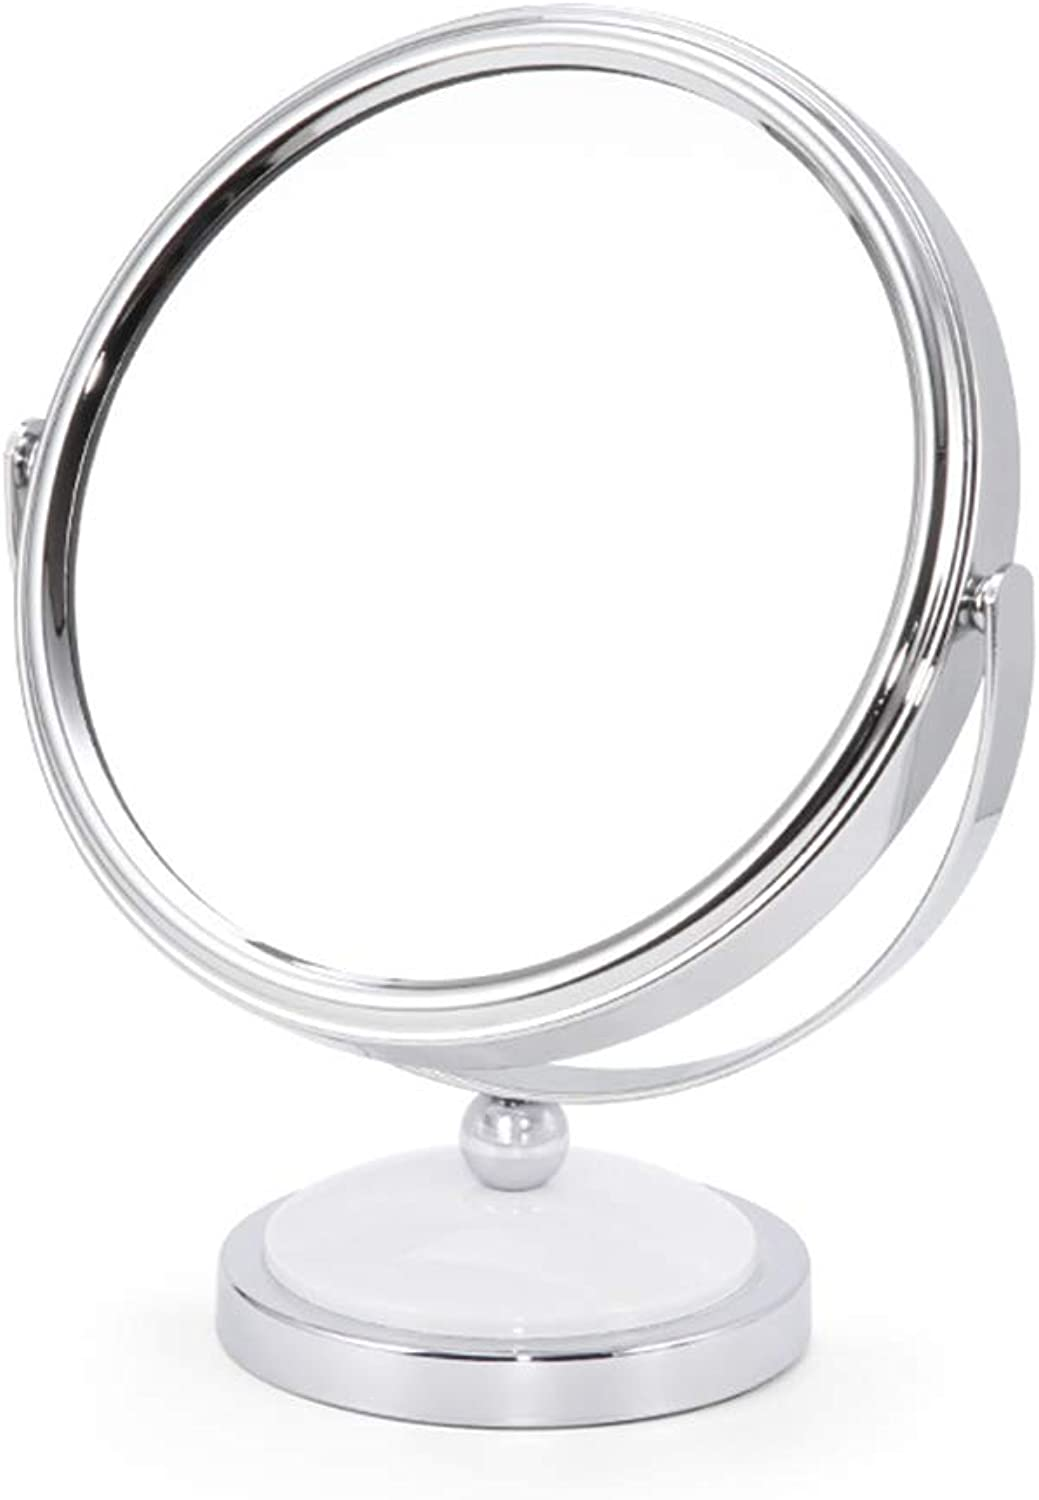 BLWX - European Makeup Mirror - HD Double-Sided Dressing Mirror Desktop Mirror Mirror (color   White, Size   8.5X15X19.5)